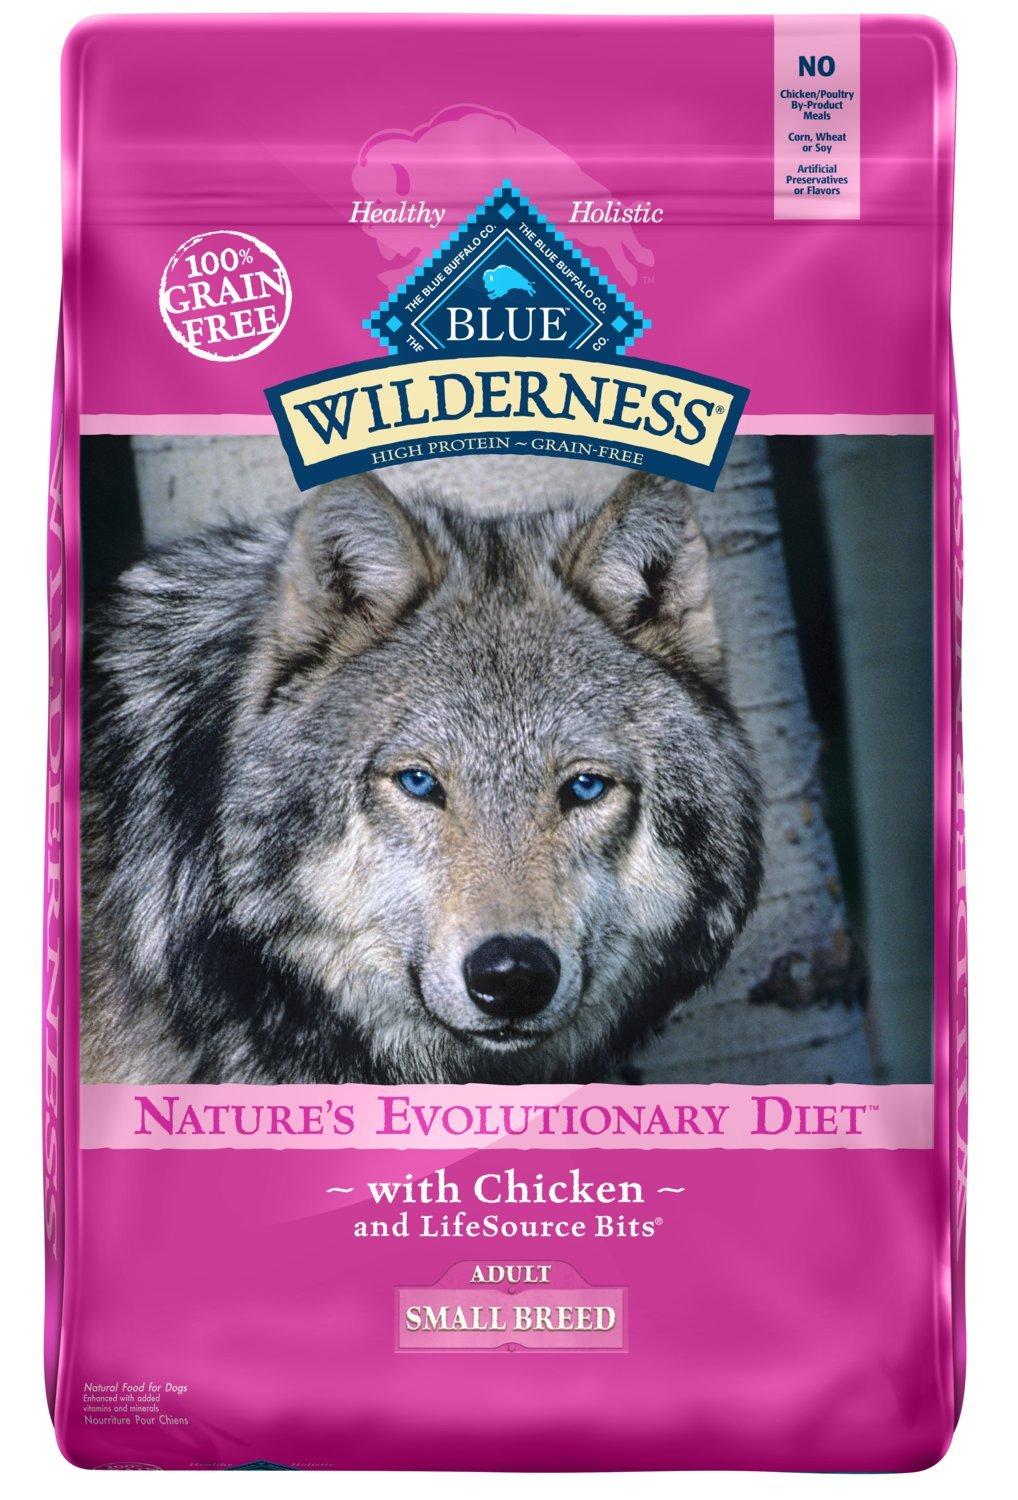 3. Blue Buffalo Wilderness High Protein Grain-Free Dry Dog Food